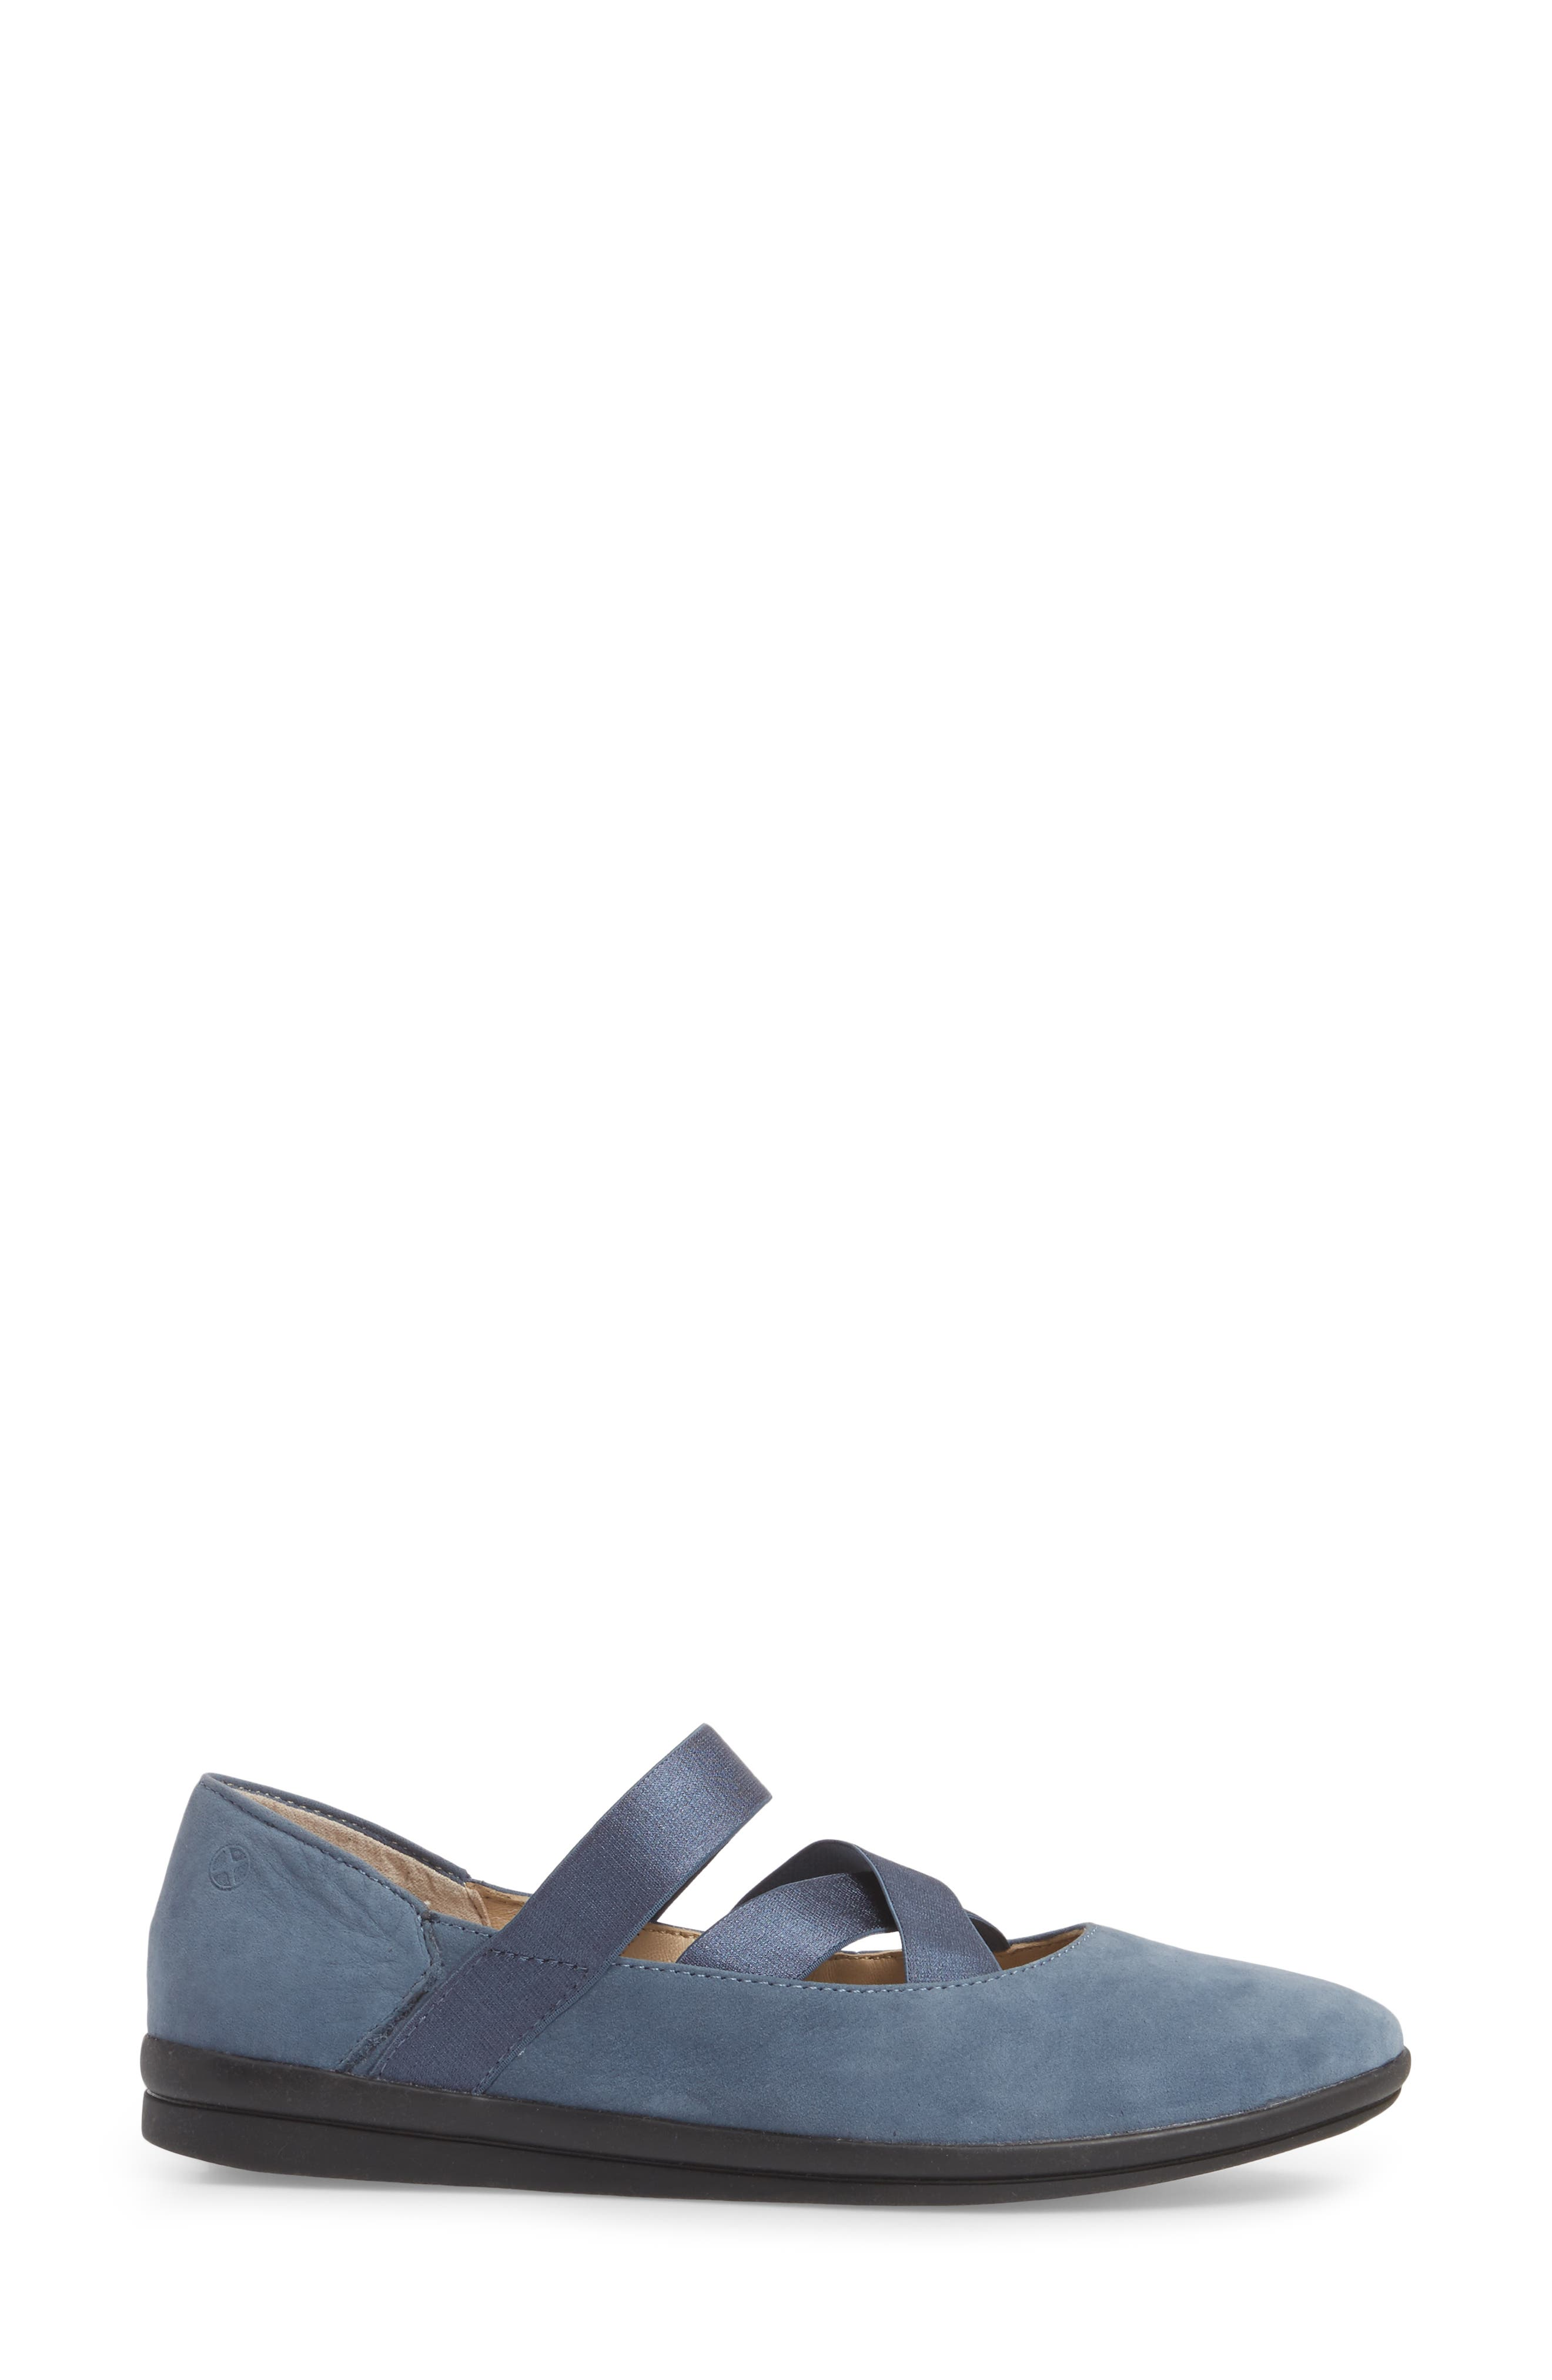 Meree Madrine Cross Strap Flat,                             Alternate thumbnail 3, color,                             Vintage Indigo Nubuck Leather